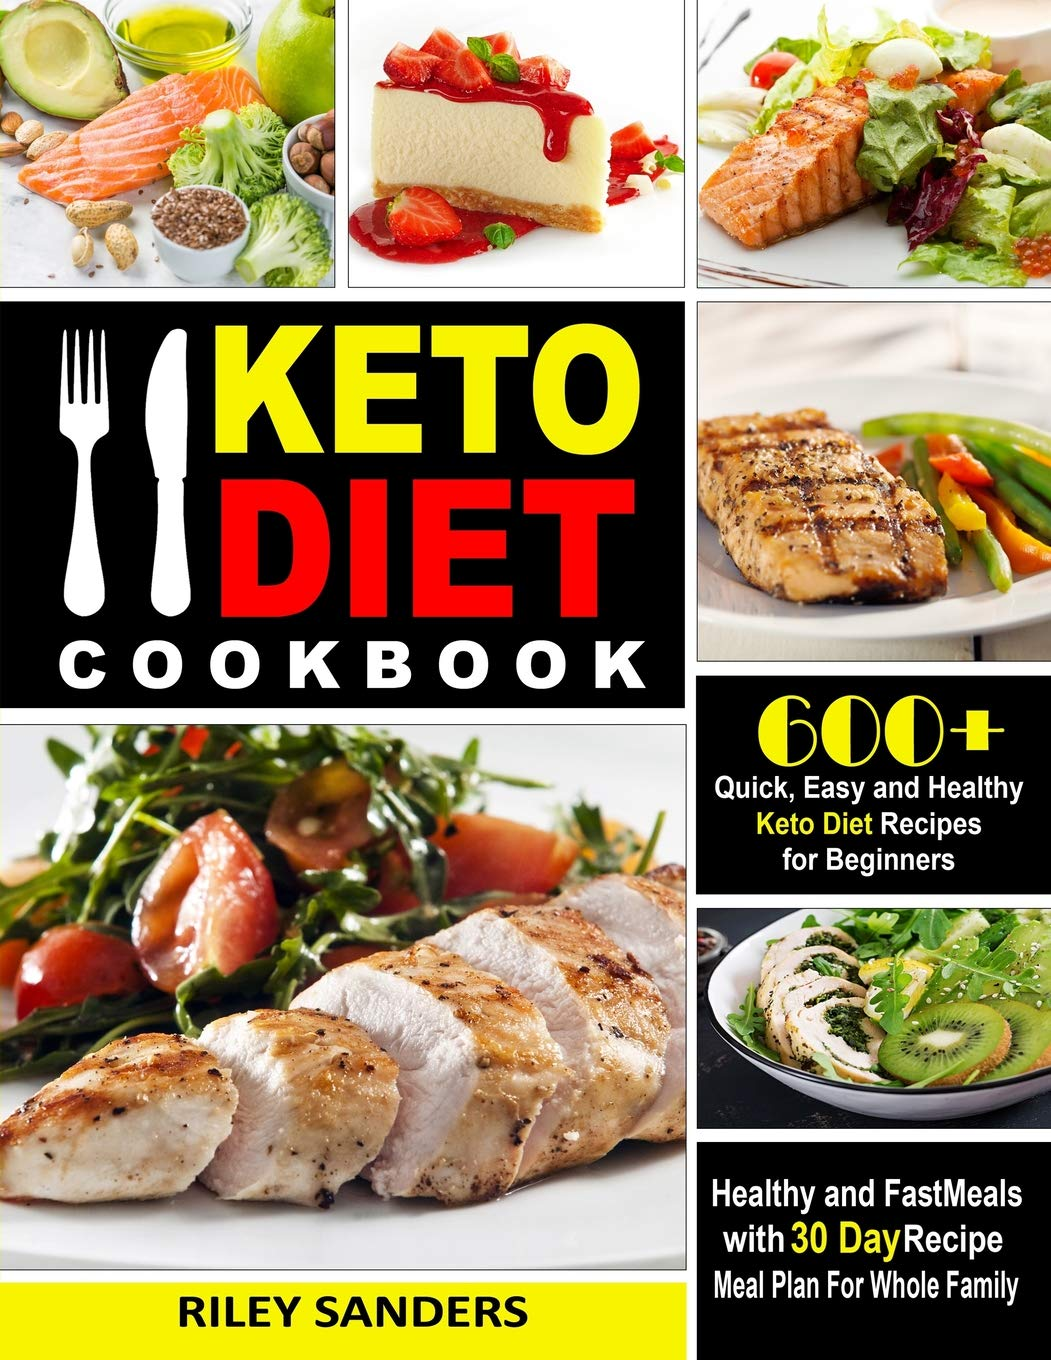 the healthy keto diet